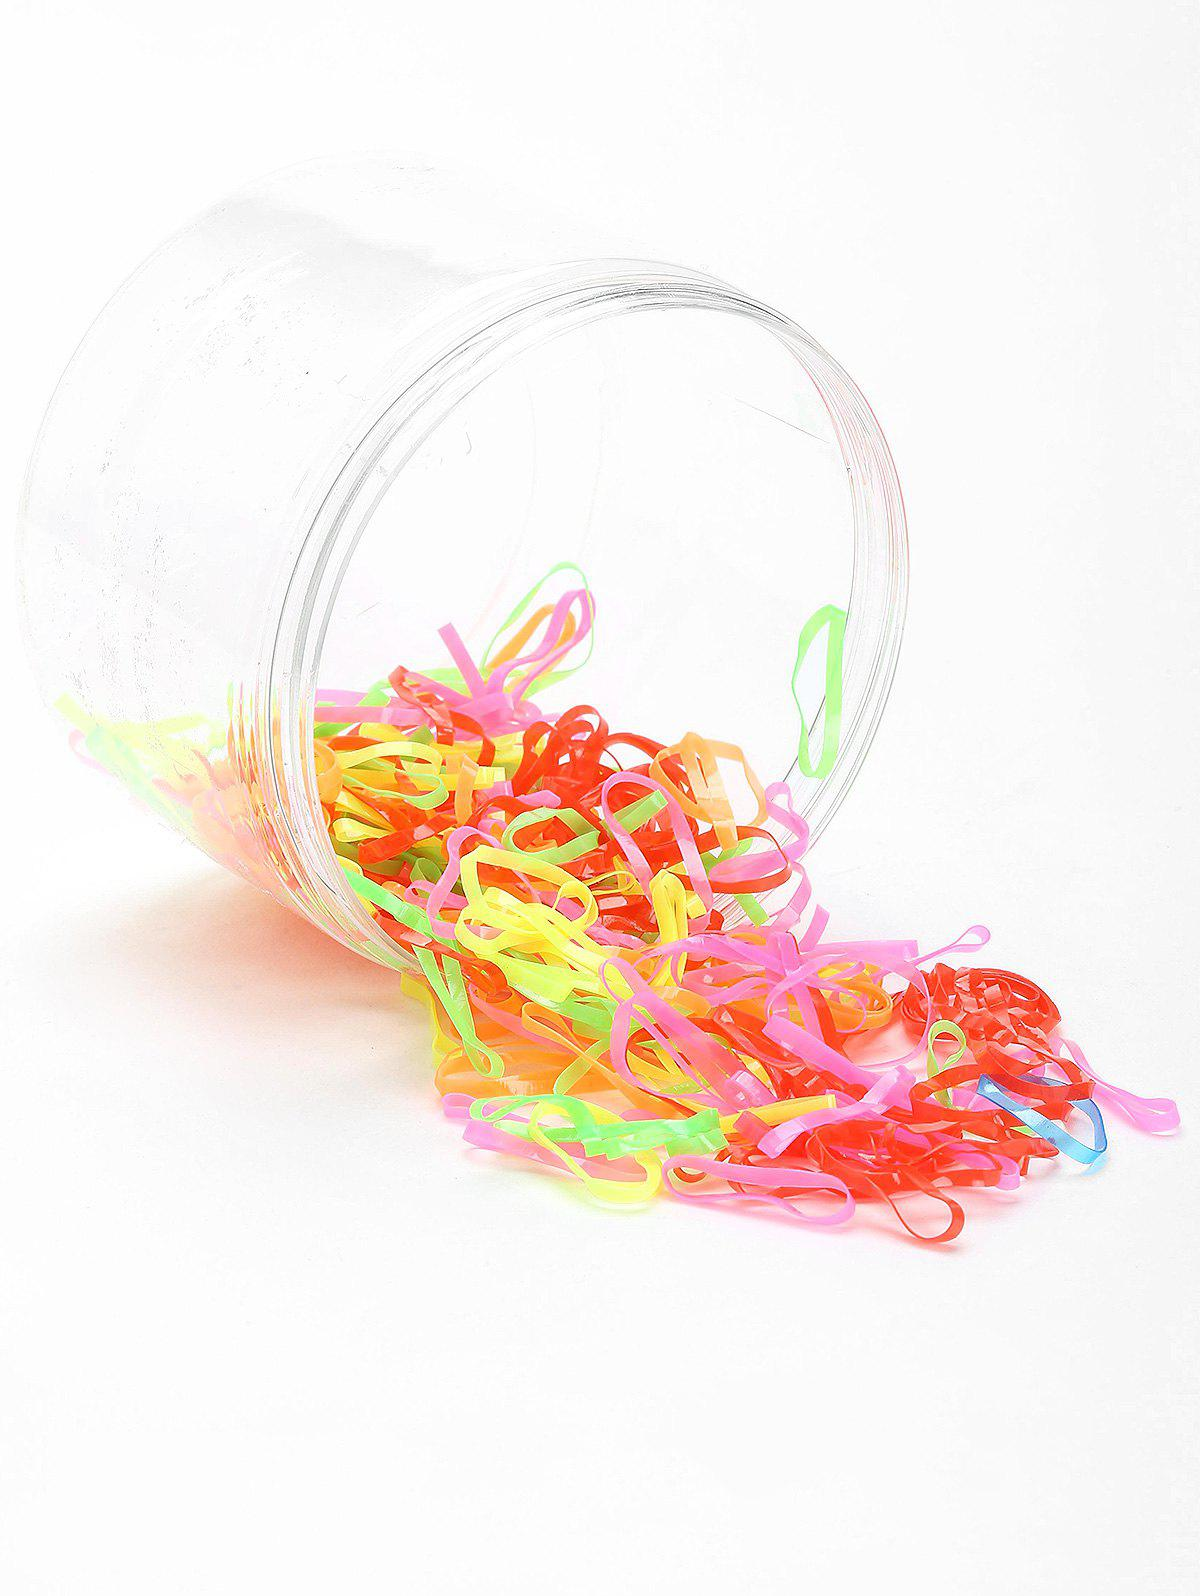 100 Pieces Elastic Hair Bands Set - PATTERN A